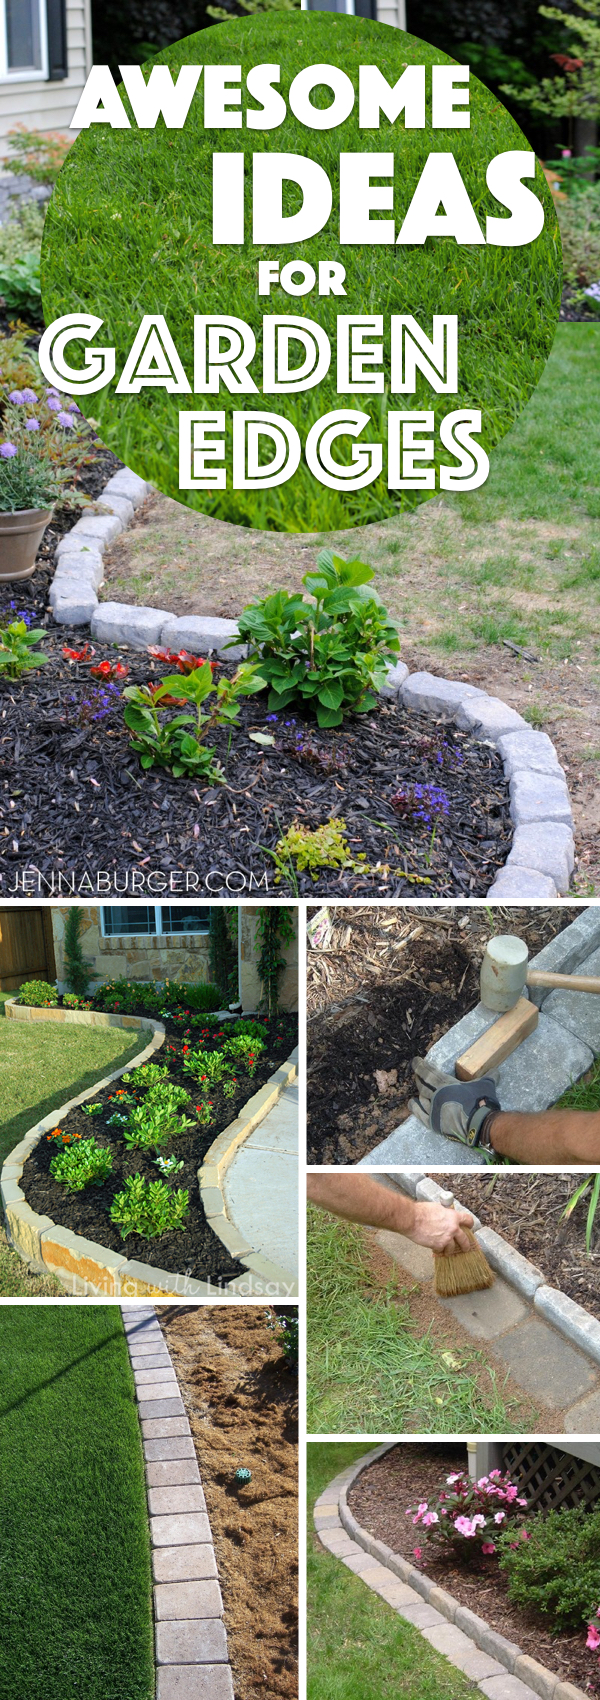 Awesome Ideas for Garden Edges